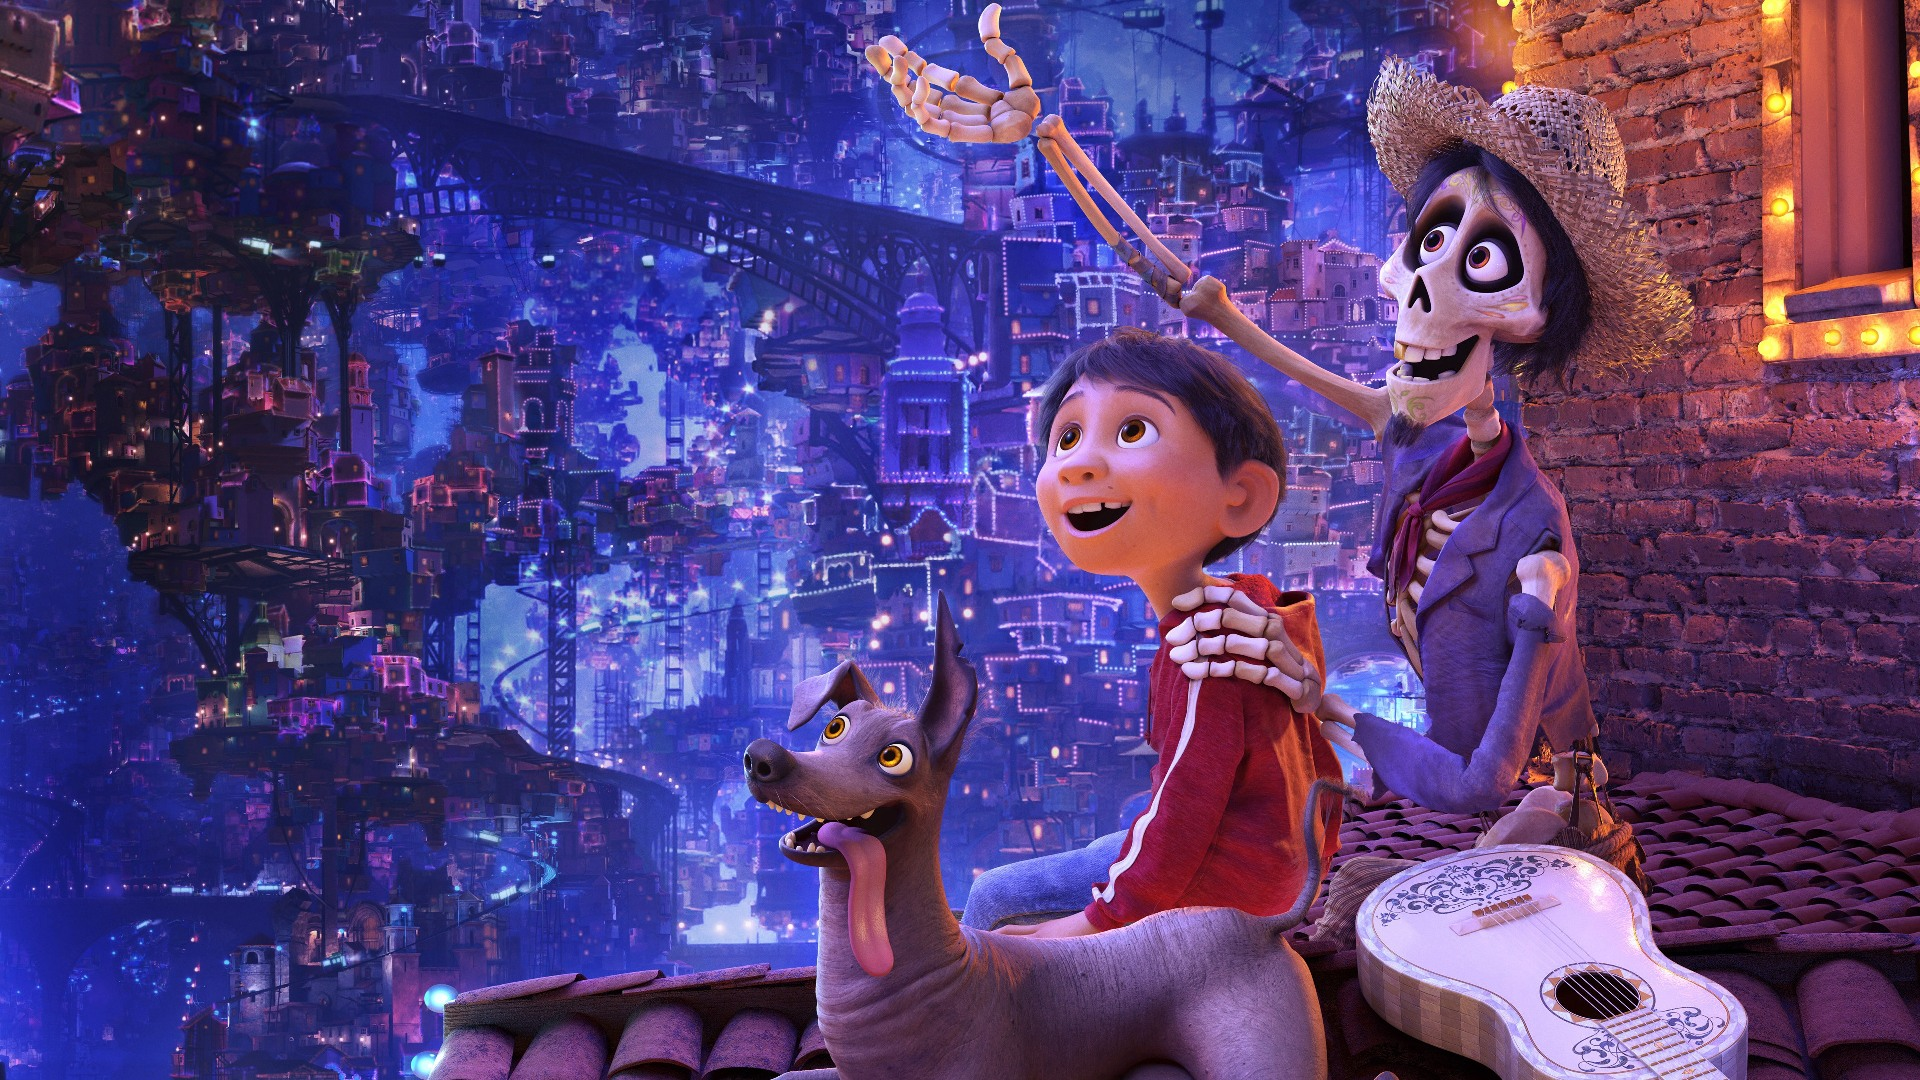 coco movie miguel dante and hector